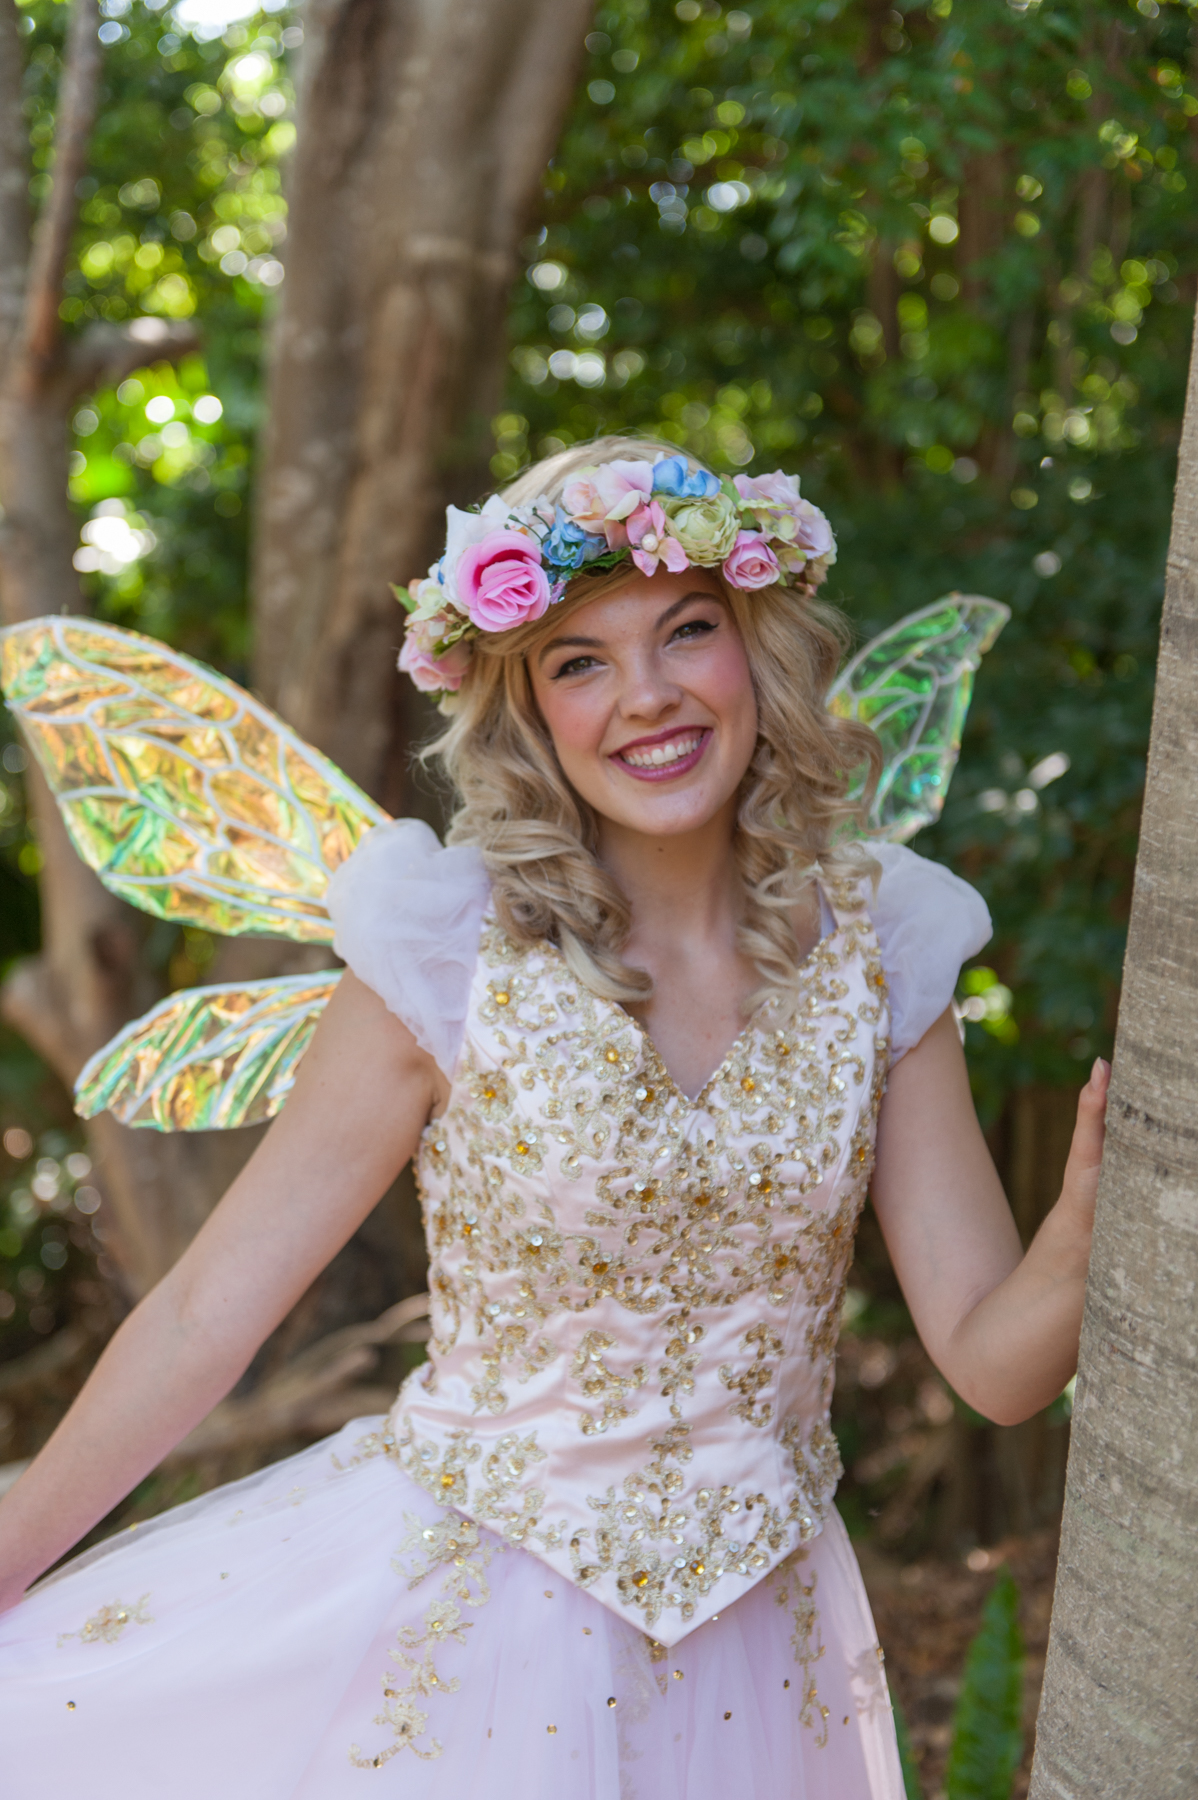 PIXIE POPPY  is a Gold and pink fairy! She is know for taking care of new born fairies, and loves to visit little humans at 1st Birthdays and Christenings! She spreads a little joy and magic everywhere she goes!